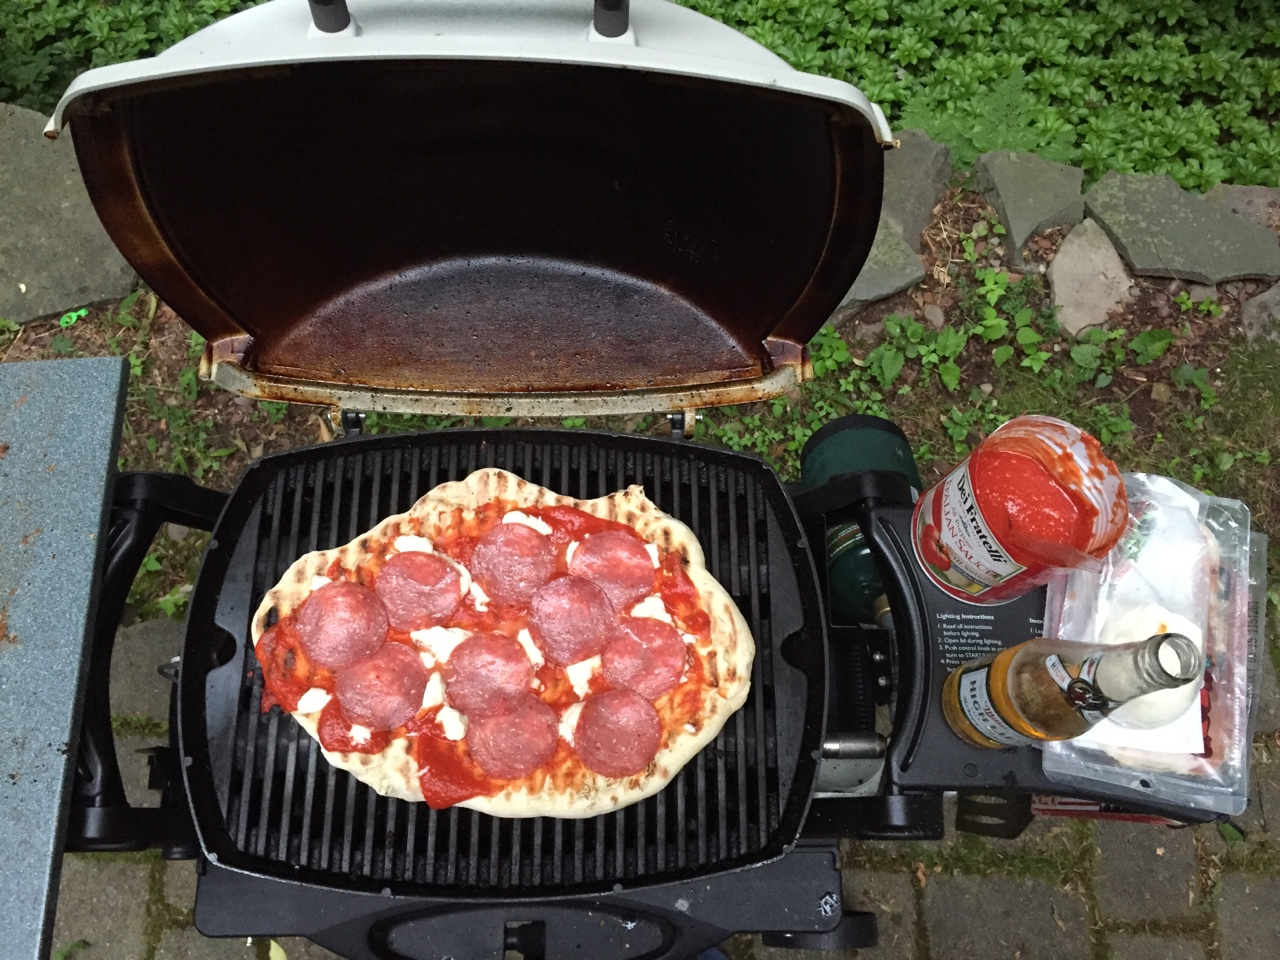 Summer is made for grilling pizzas